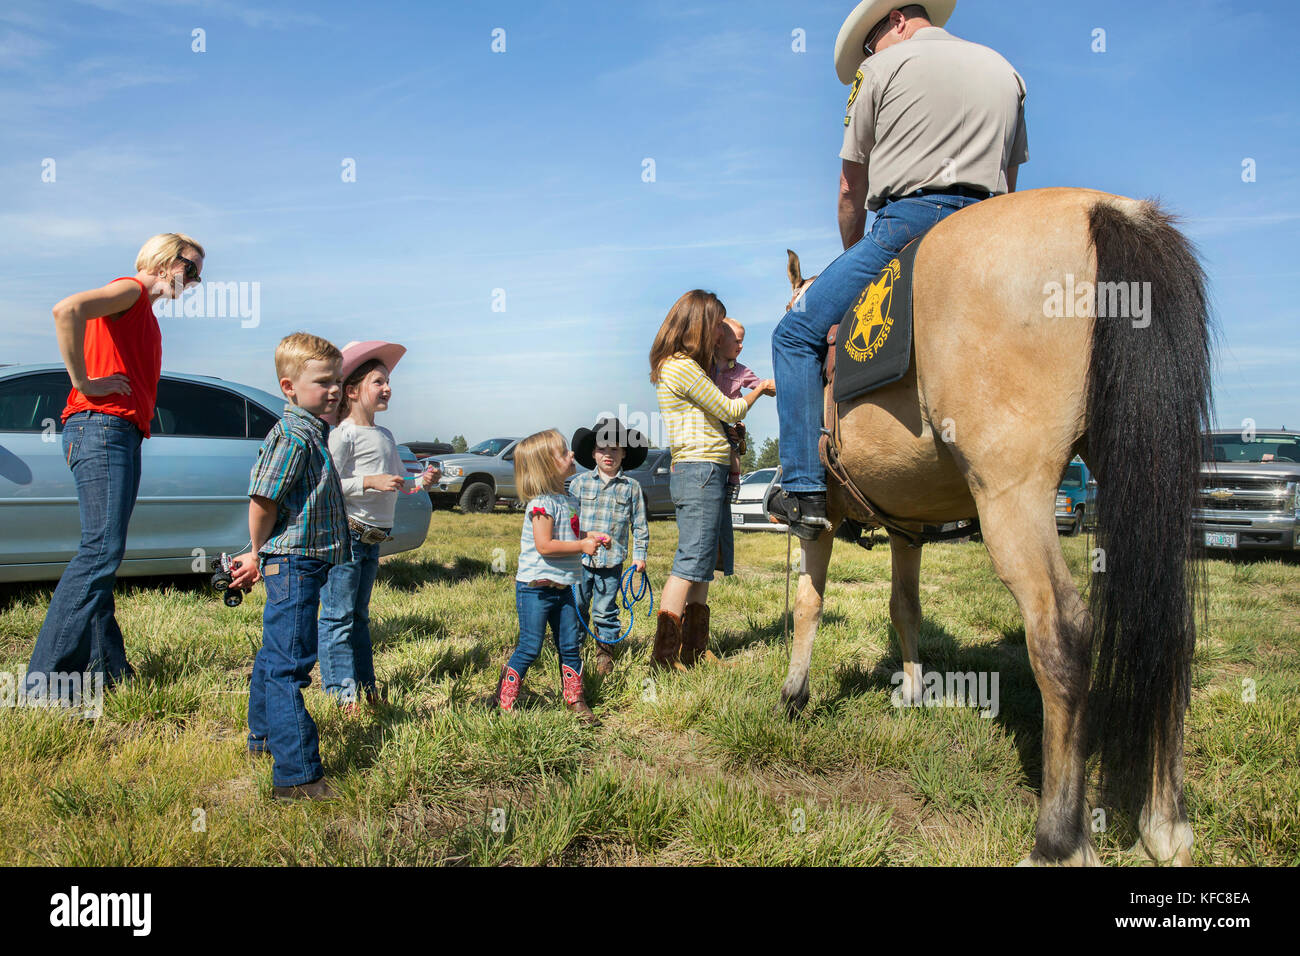 USA, Oregon, Sisters, Sisters Rodeo, young kids meet and pet the Sheriff's horse - Stock Image